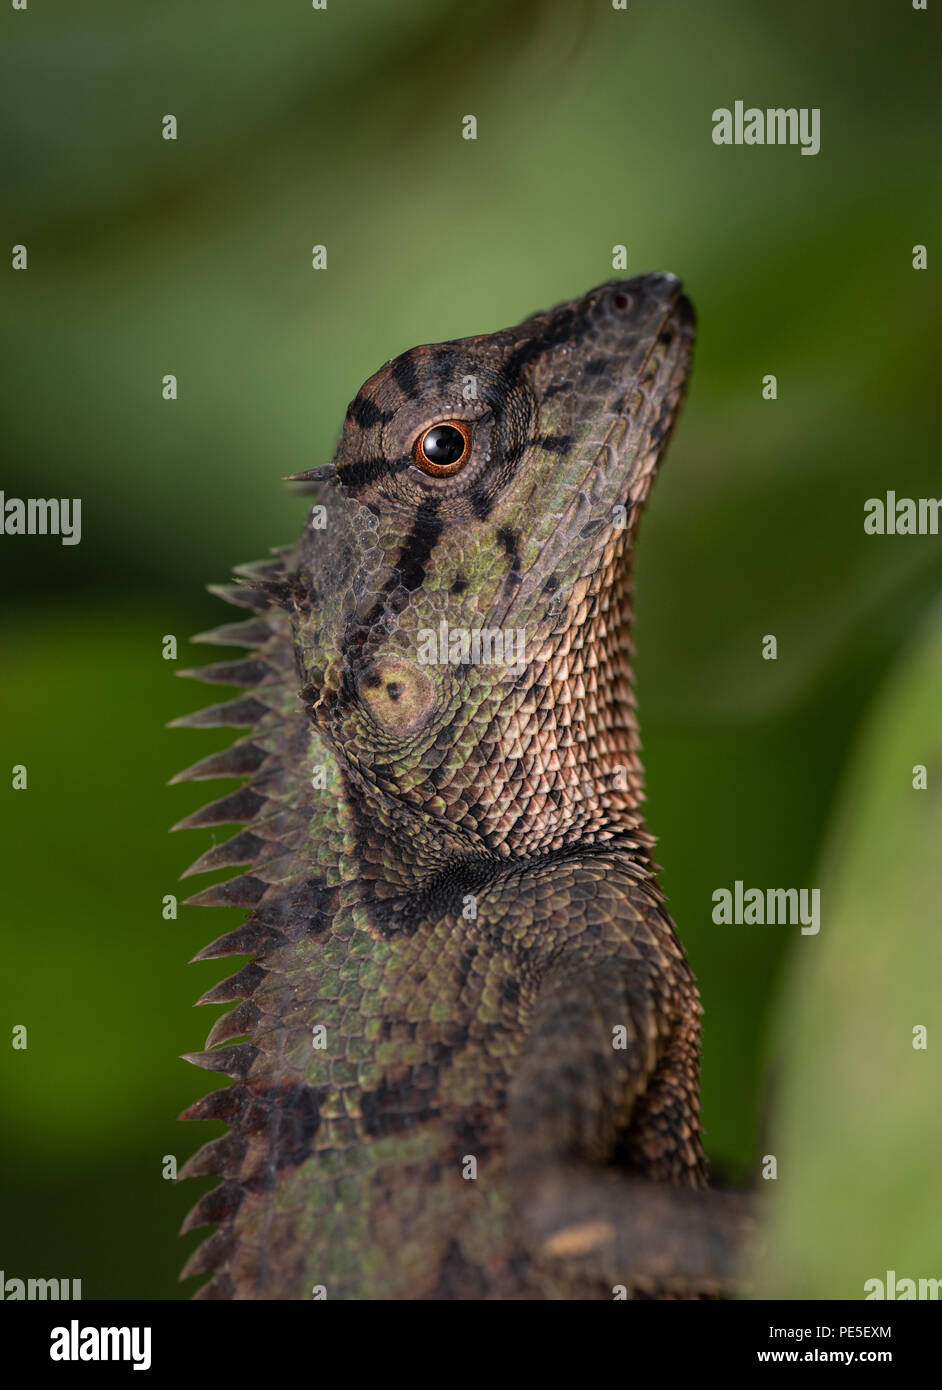 Calotes emma, commonly known as Emma Gray's forest lizard, is a species of lizard in the family Agamidae. - Stock Image